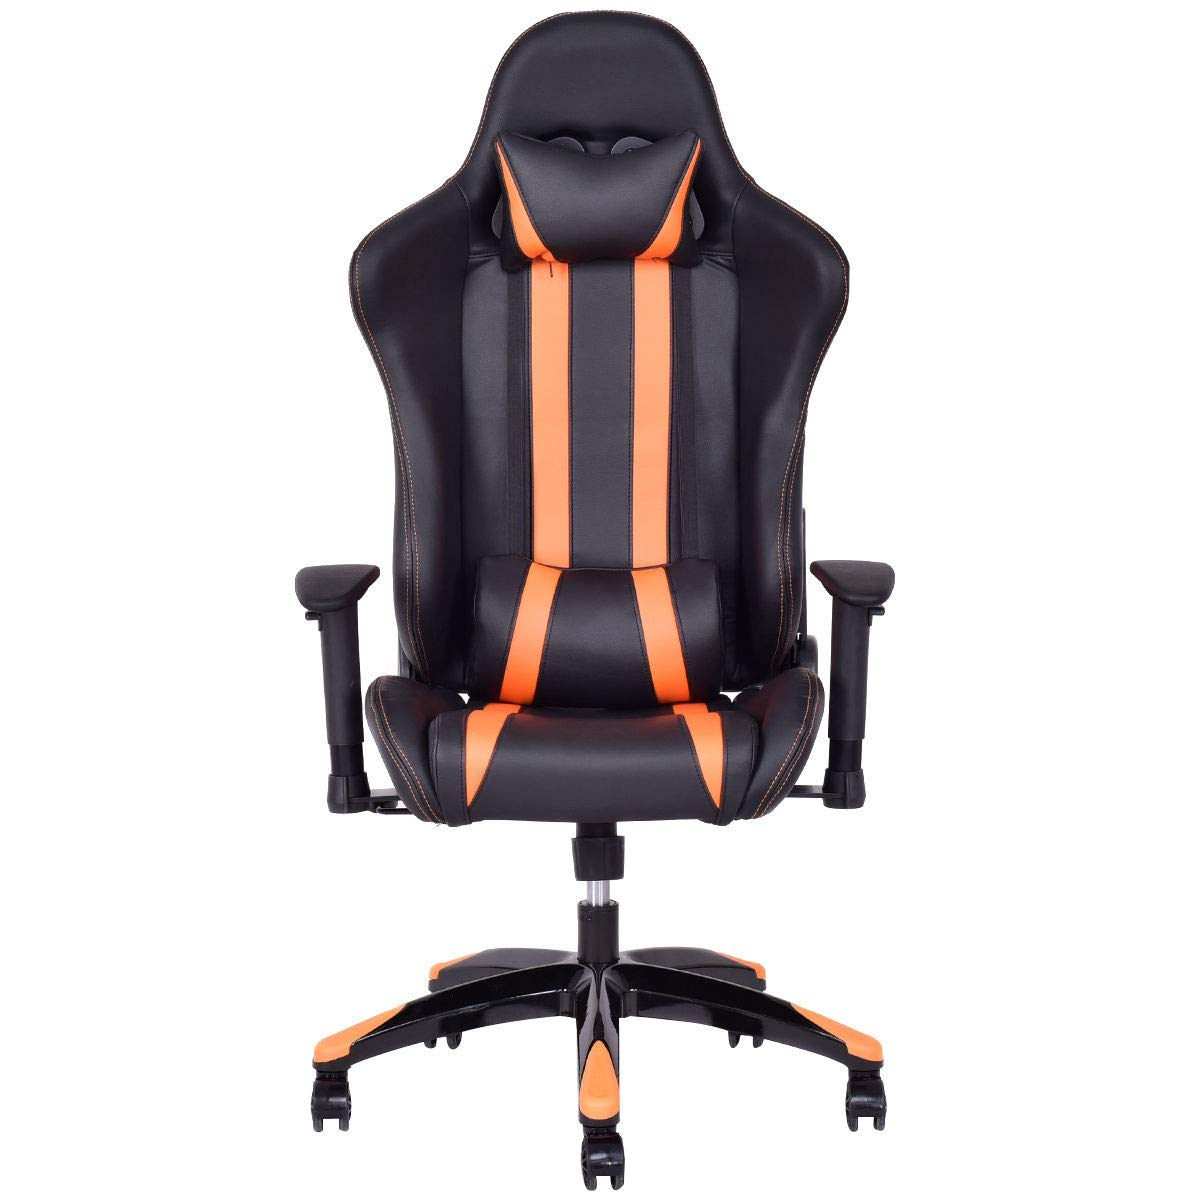 Dayanaprincess High-Back Reclining Racing Gaming Chair with Head-Rest Pillow Contemporary Design Comfortable Seat with Armrest Solid Construction Workstation Home Office Furniture (Orange) by Dayanaprincess (Image #2)